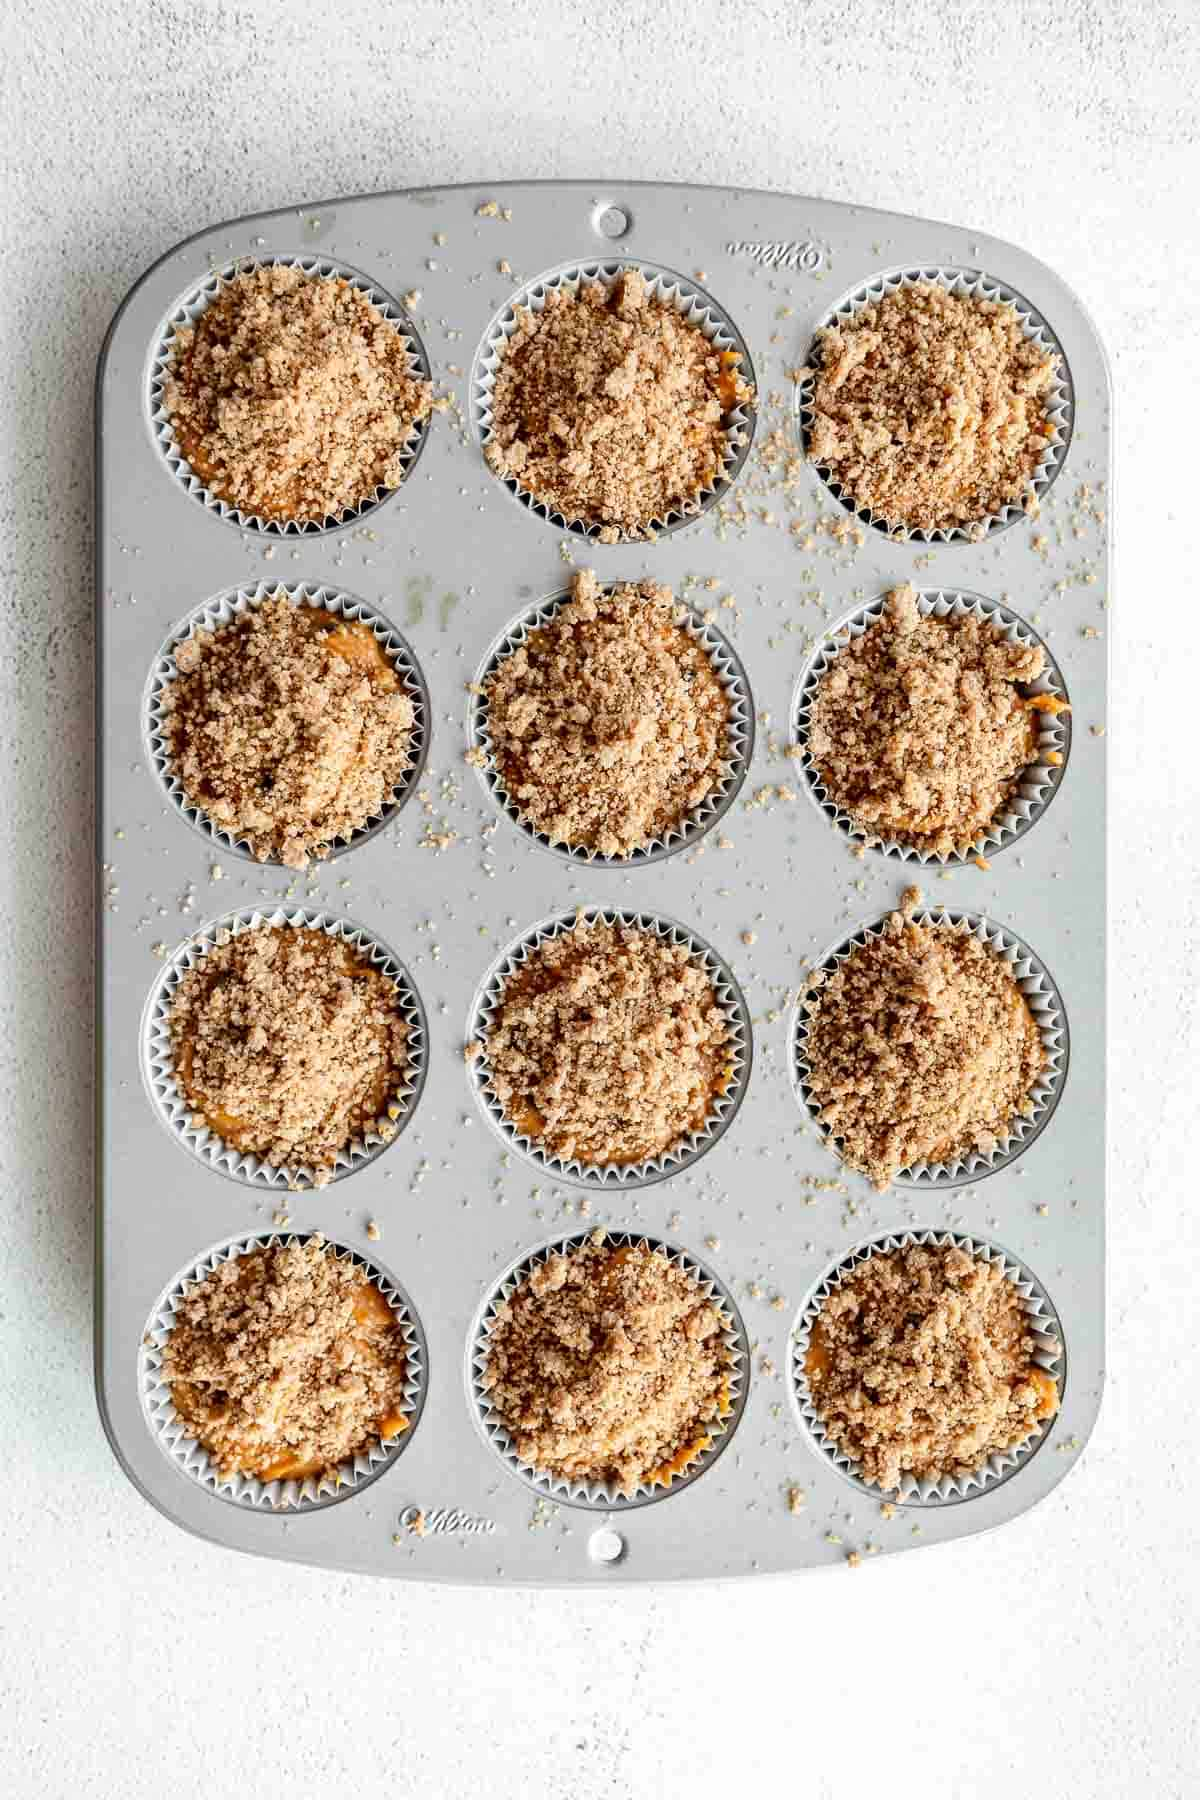 pumpkin muffins in a muffin tray before going in the oven